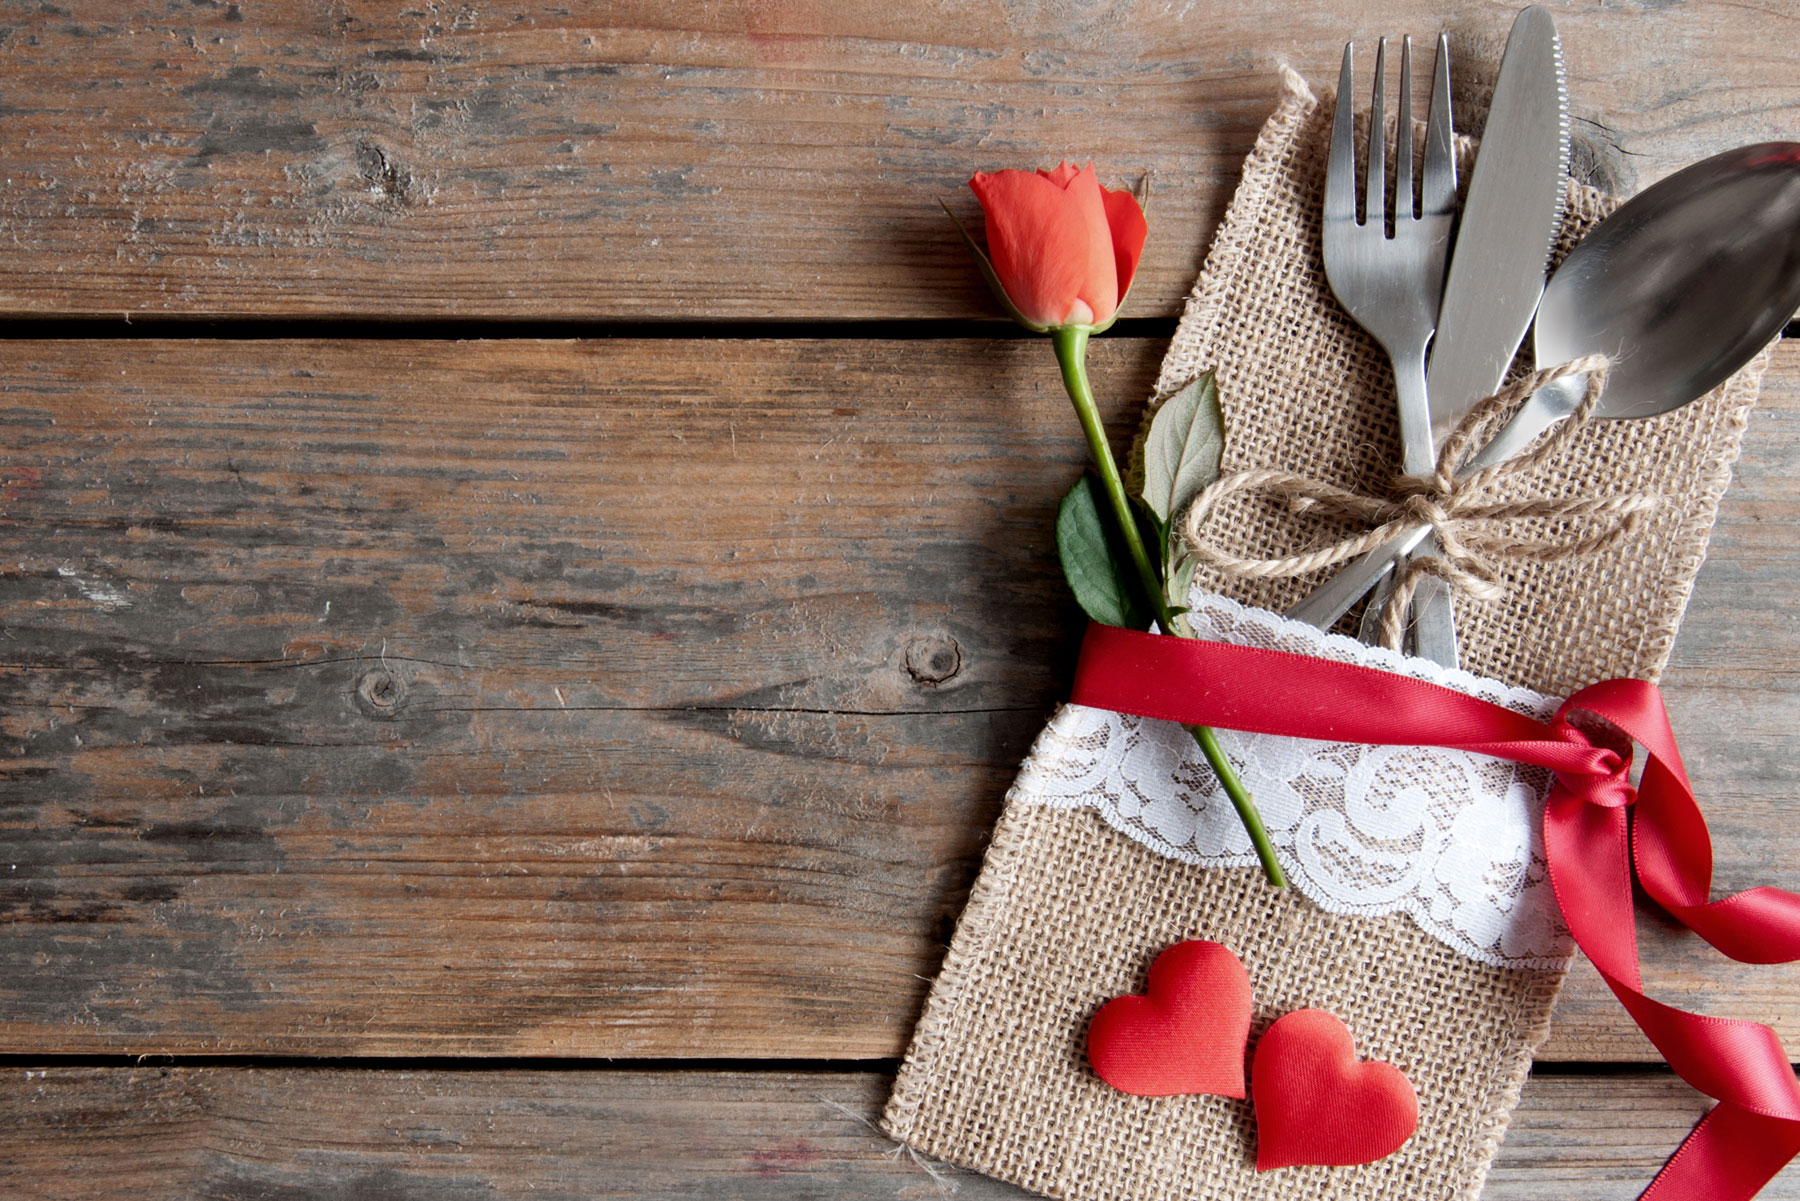 Romantic Meals for a Romantic Stay